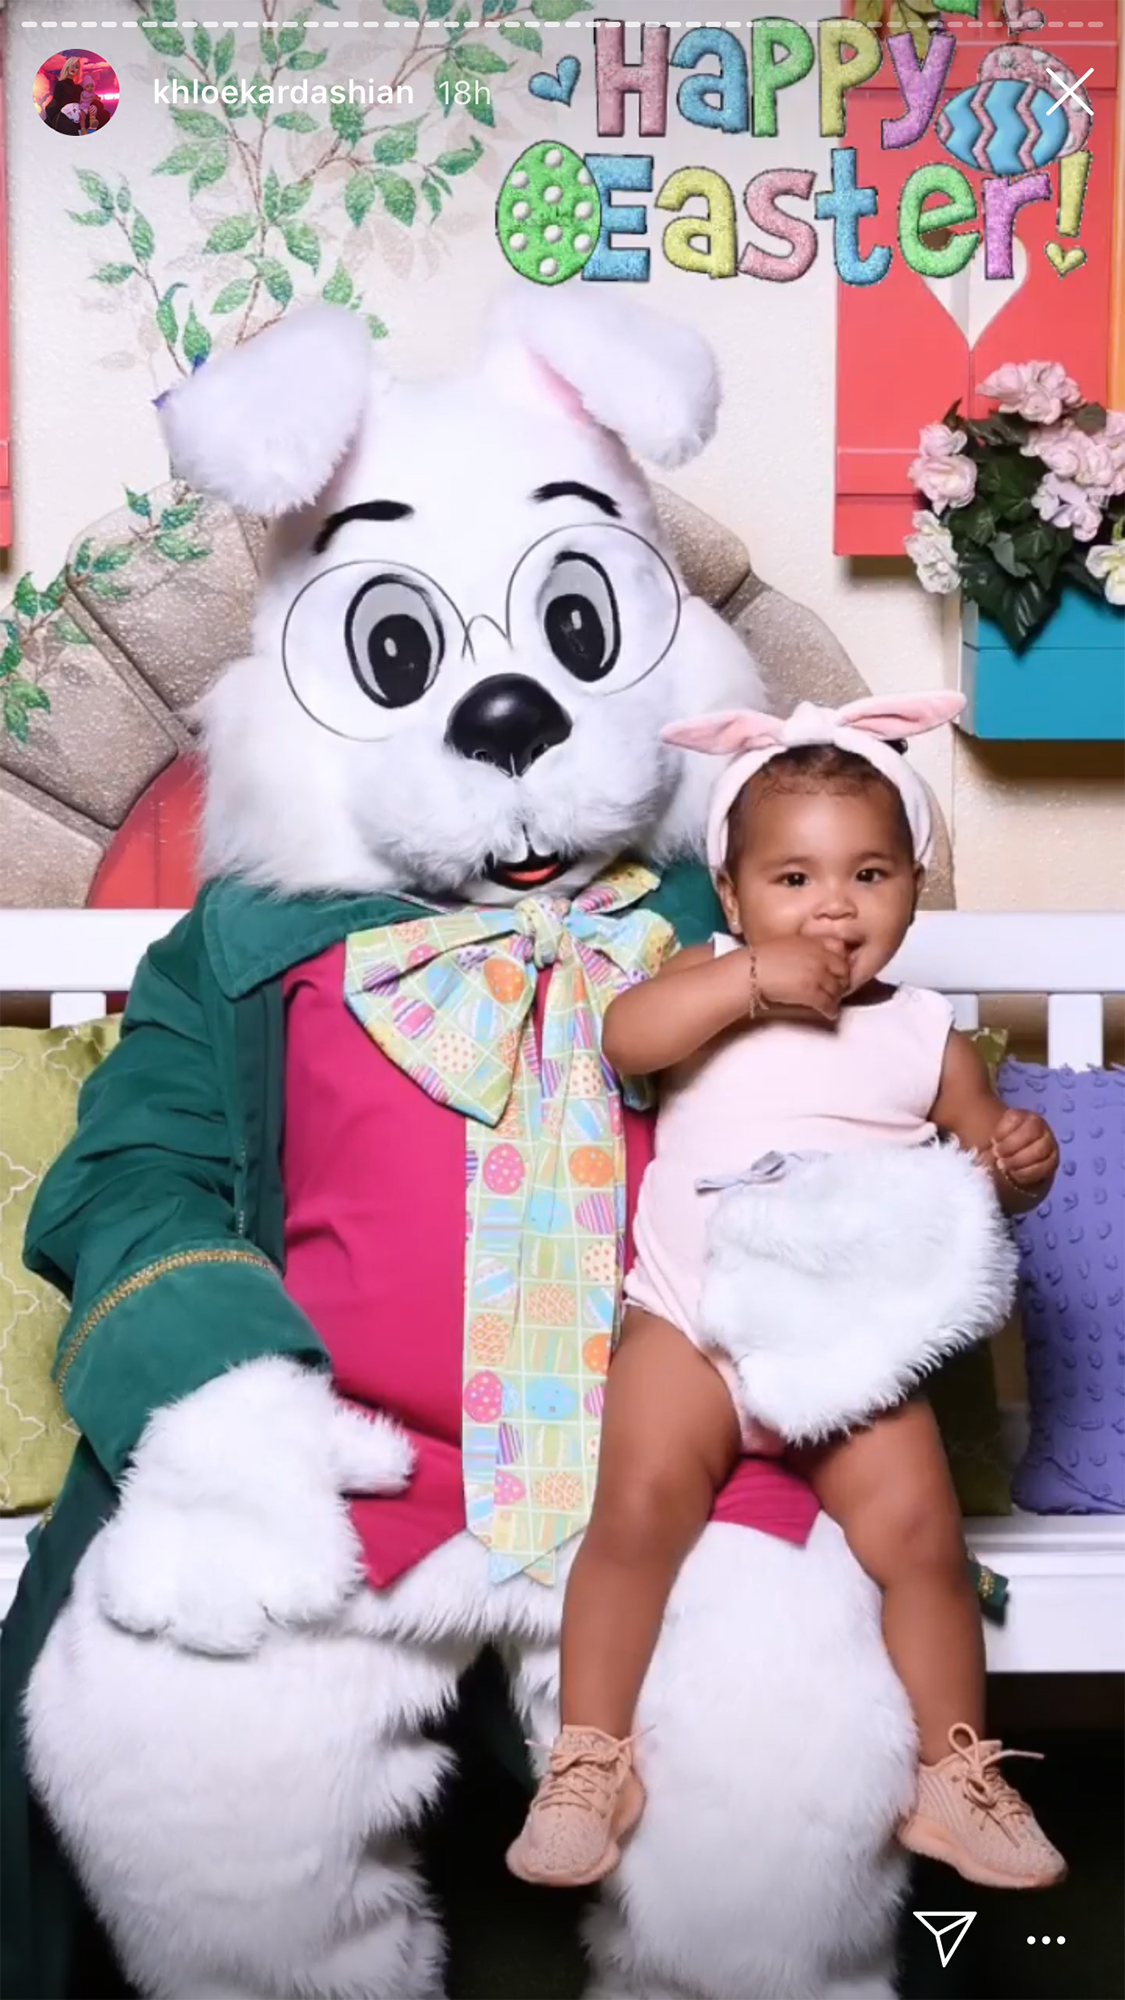 Easter Kids - The little one searched for eggs in a white and gold ensemble after visiting the Easter Bunny.